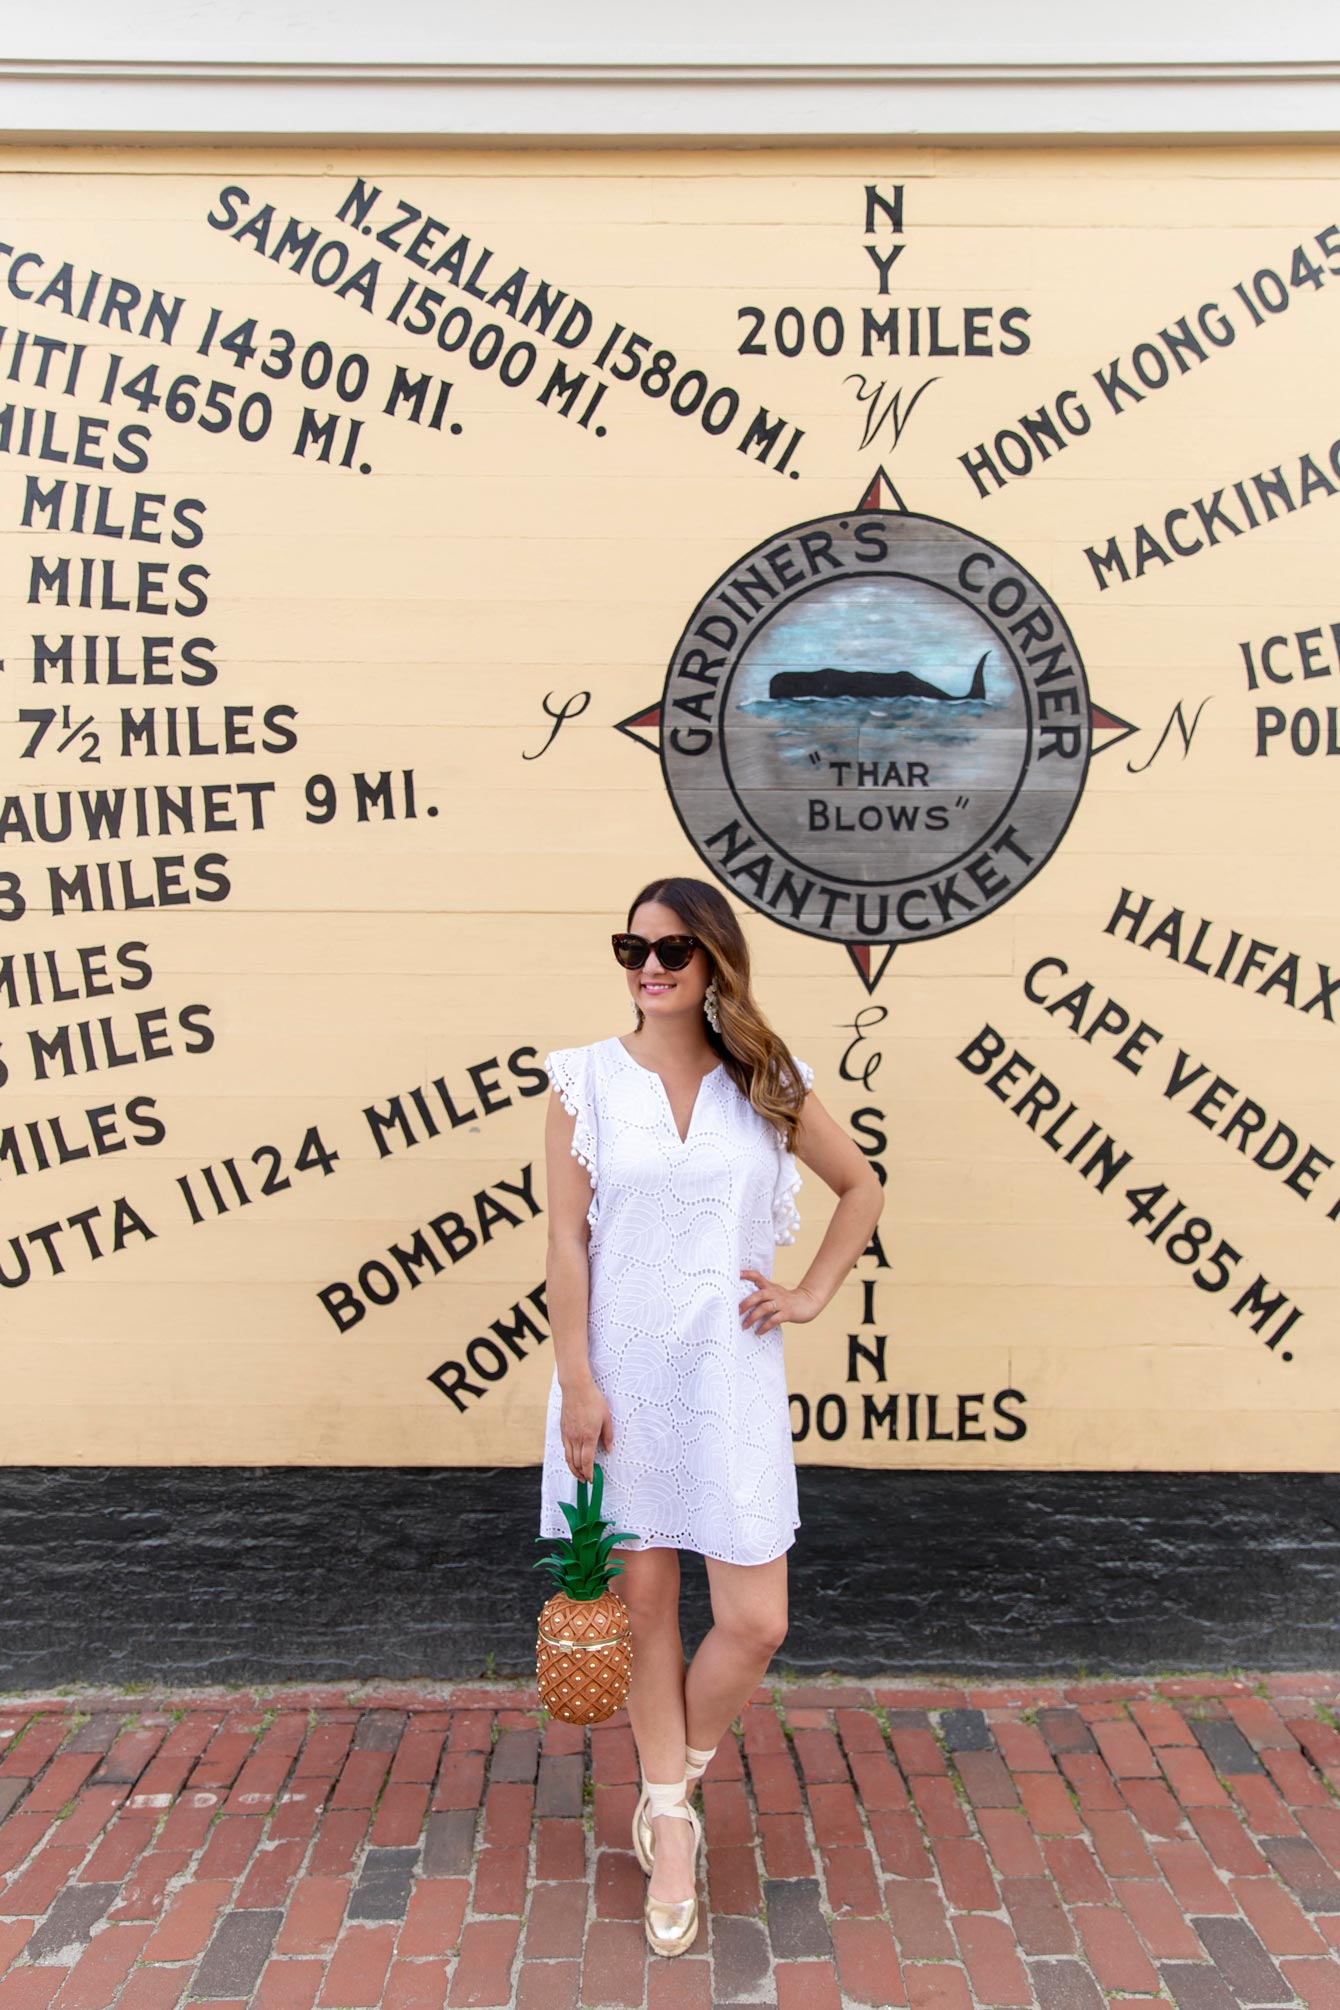 Nantucket Compass Mural